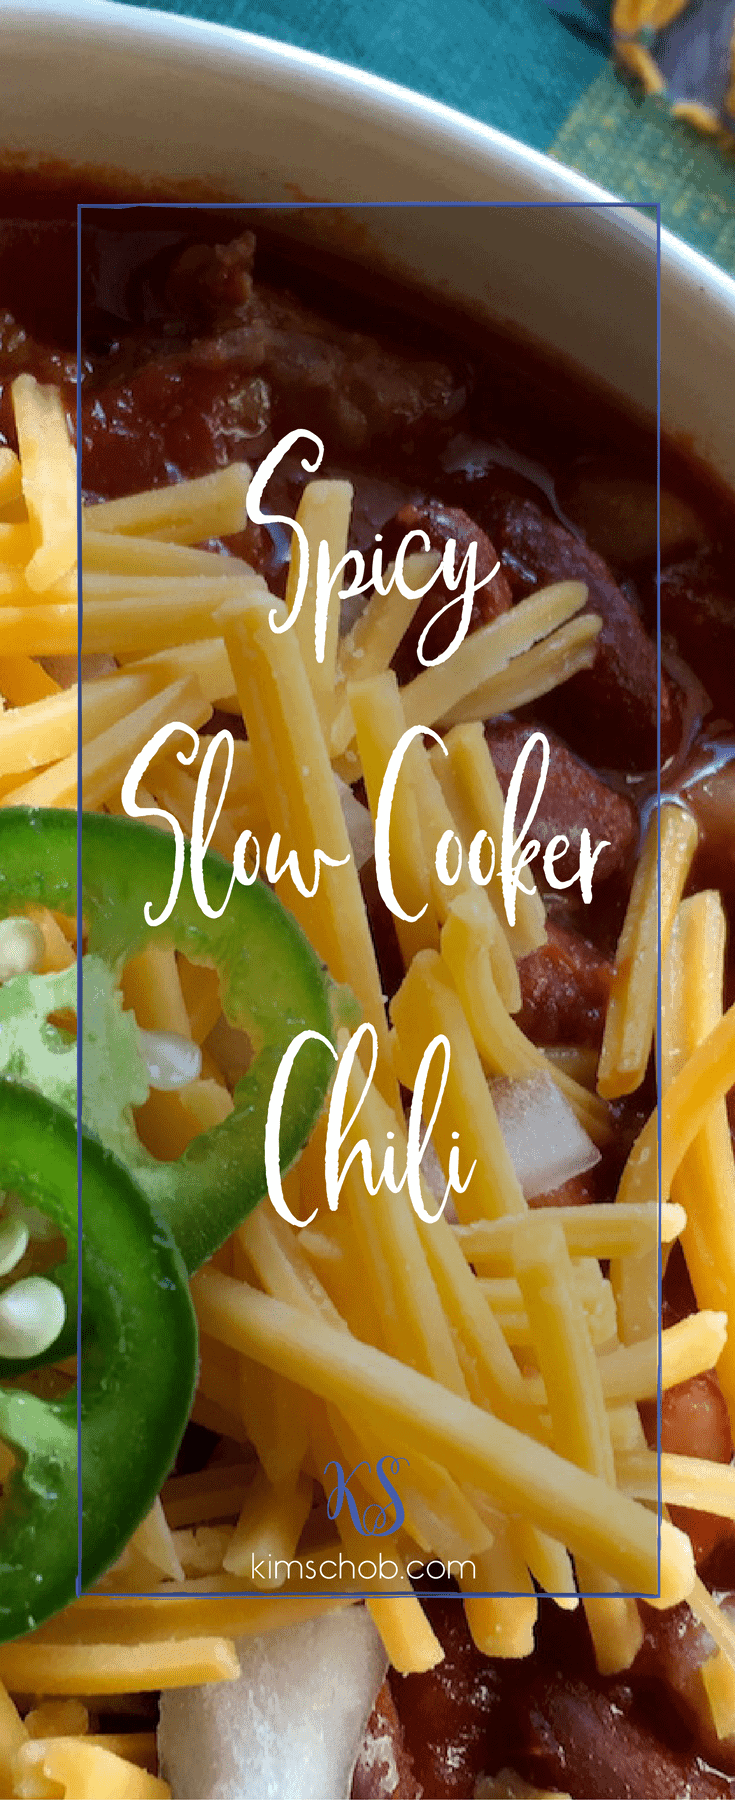 This spicy slow cooker chili gets a great boost of flavor by using a combination of spicy and sweet pork sausage want to turn it up go all spicy sausage| kimschob.com| #spicychili #slowcooker #crockpot